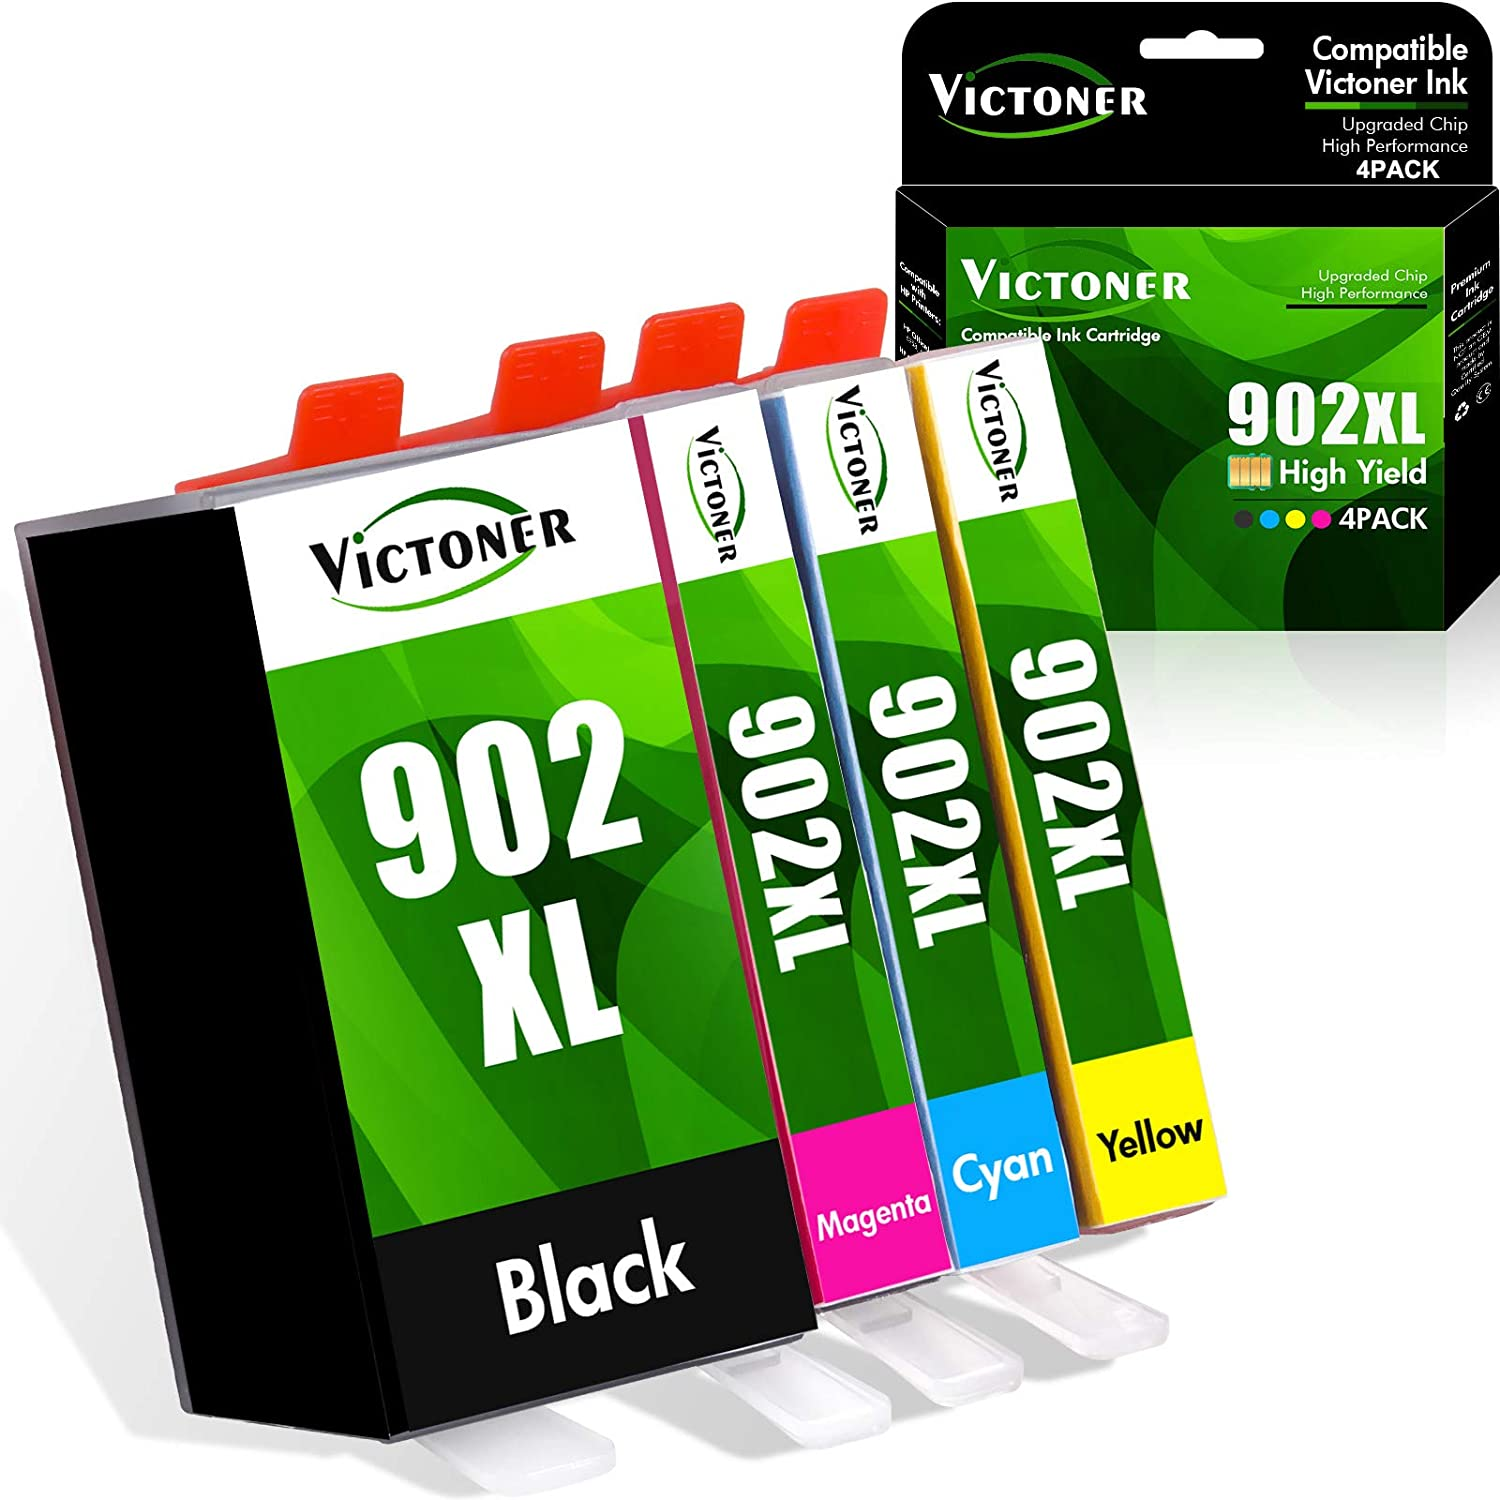 Victoner Compatible Ink Cartridge Replacement for HP 902XL 902 XL Ink Cartridge to use with HP Officejet Pro 6978 6968 6962 6958 6970 HP 902 Ink Cartridges Printer (Black Cyan Magenta Yellow 4-Pack)